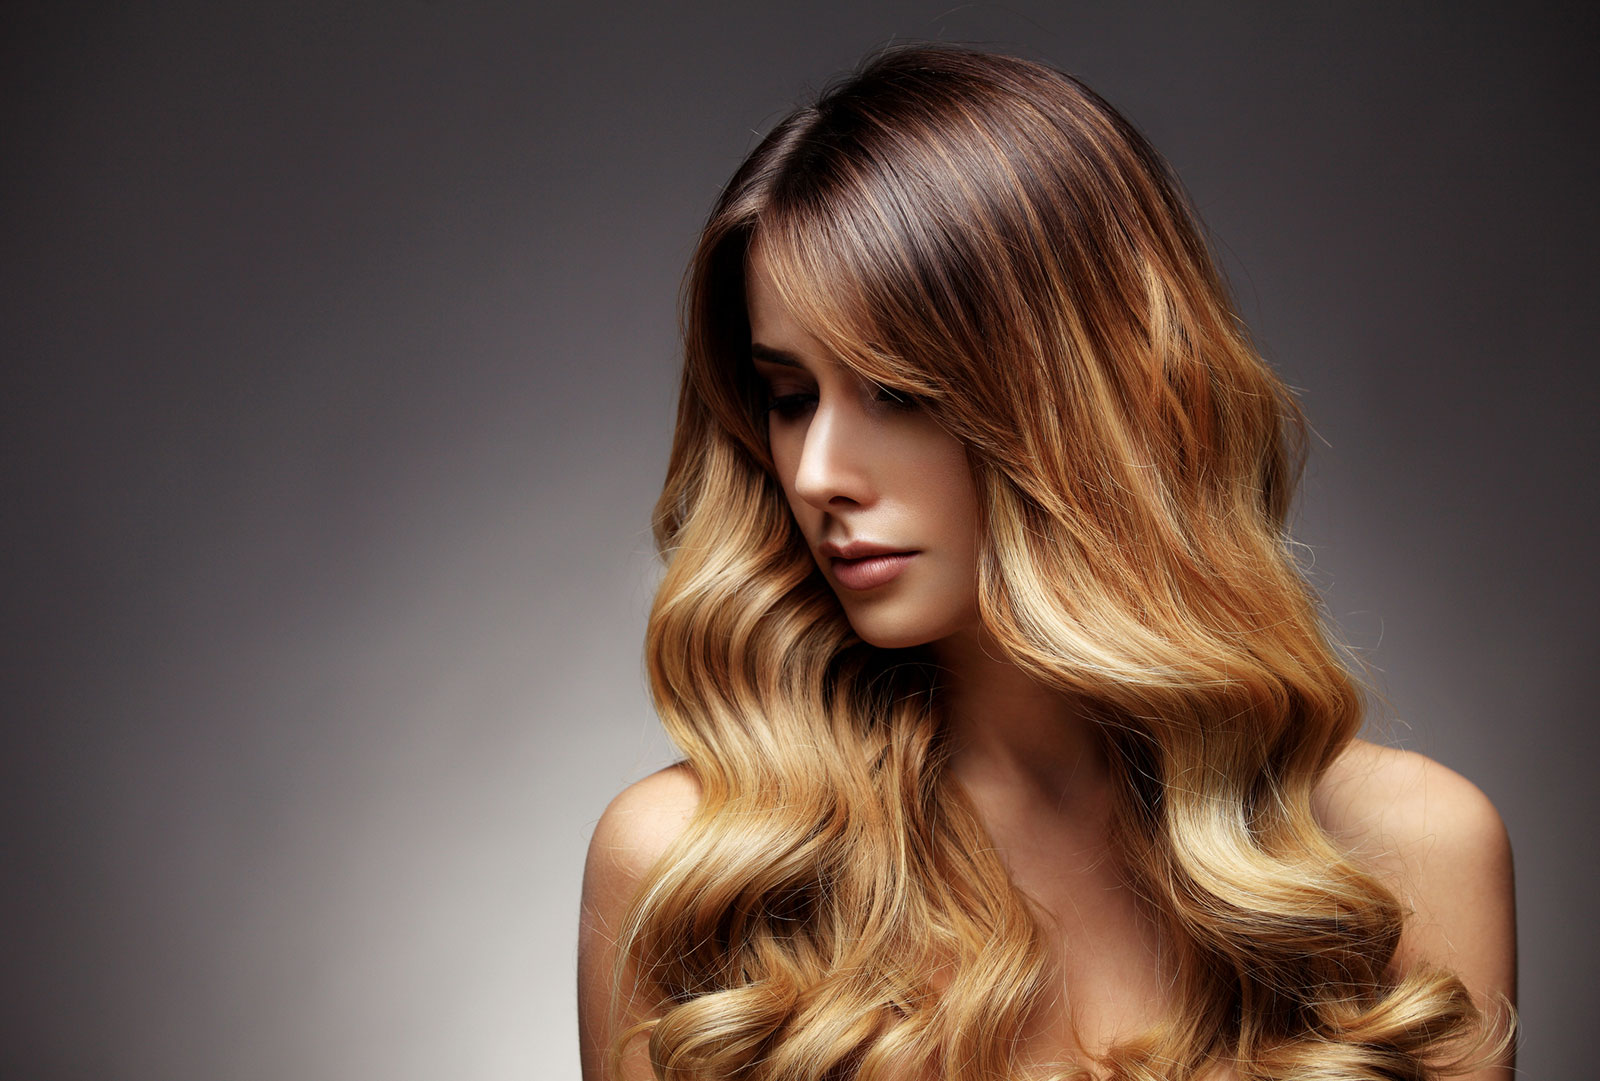 The brassy layered waves ombre brown to blonde